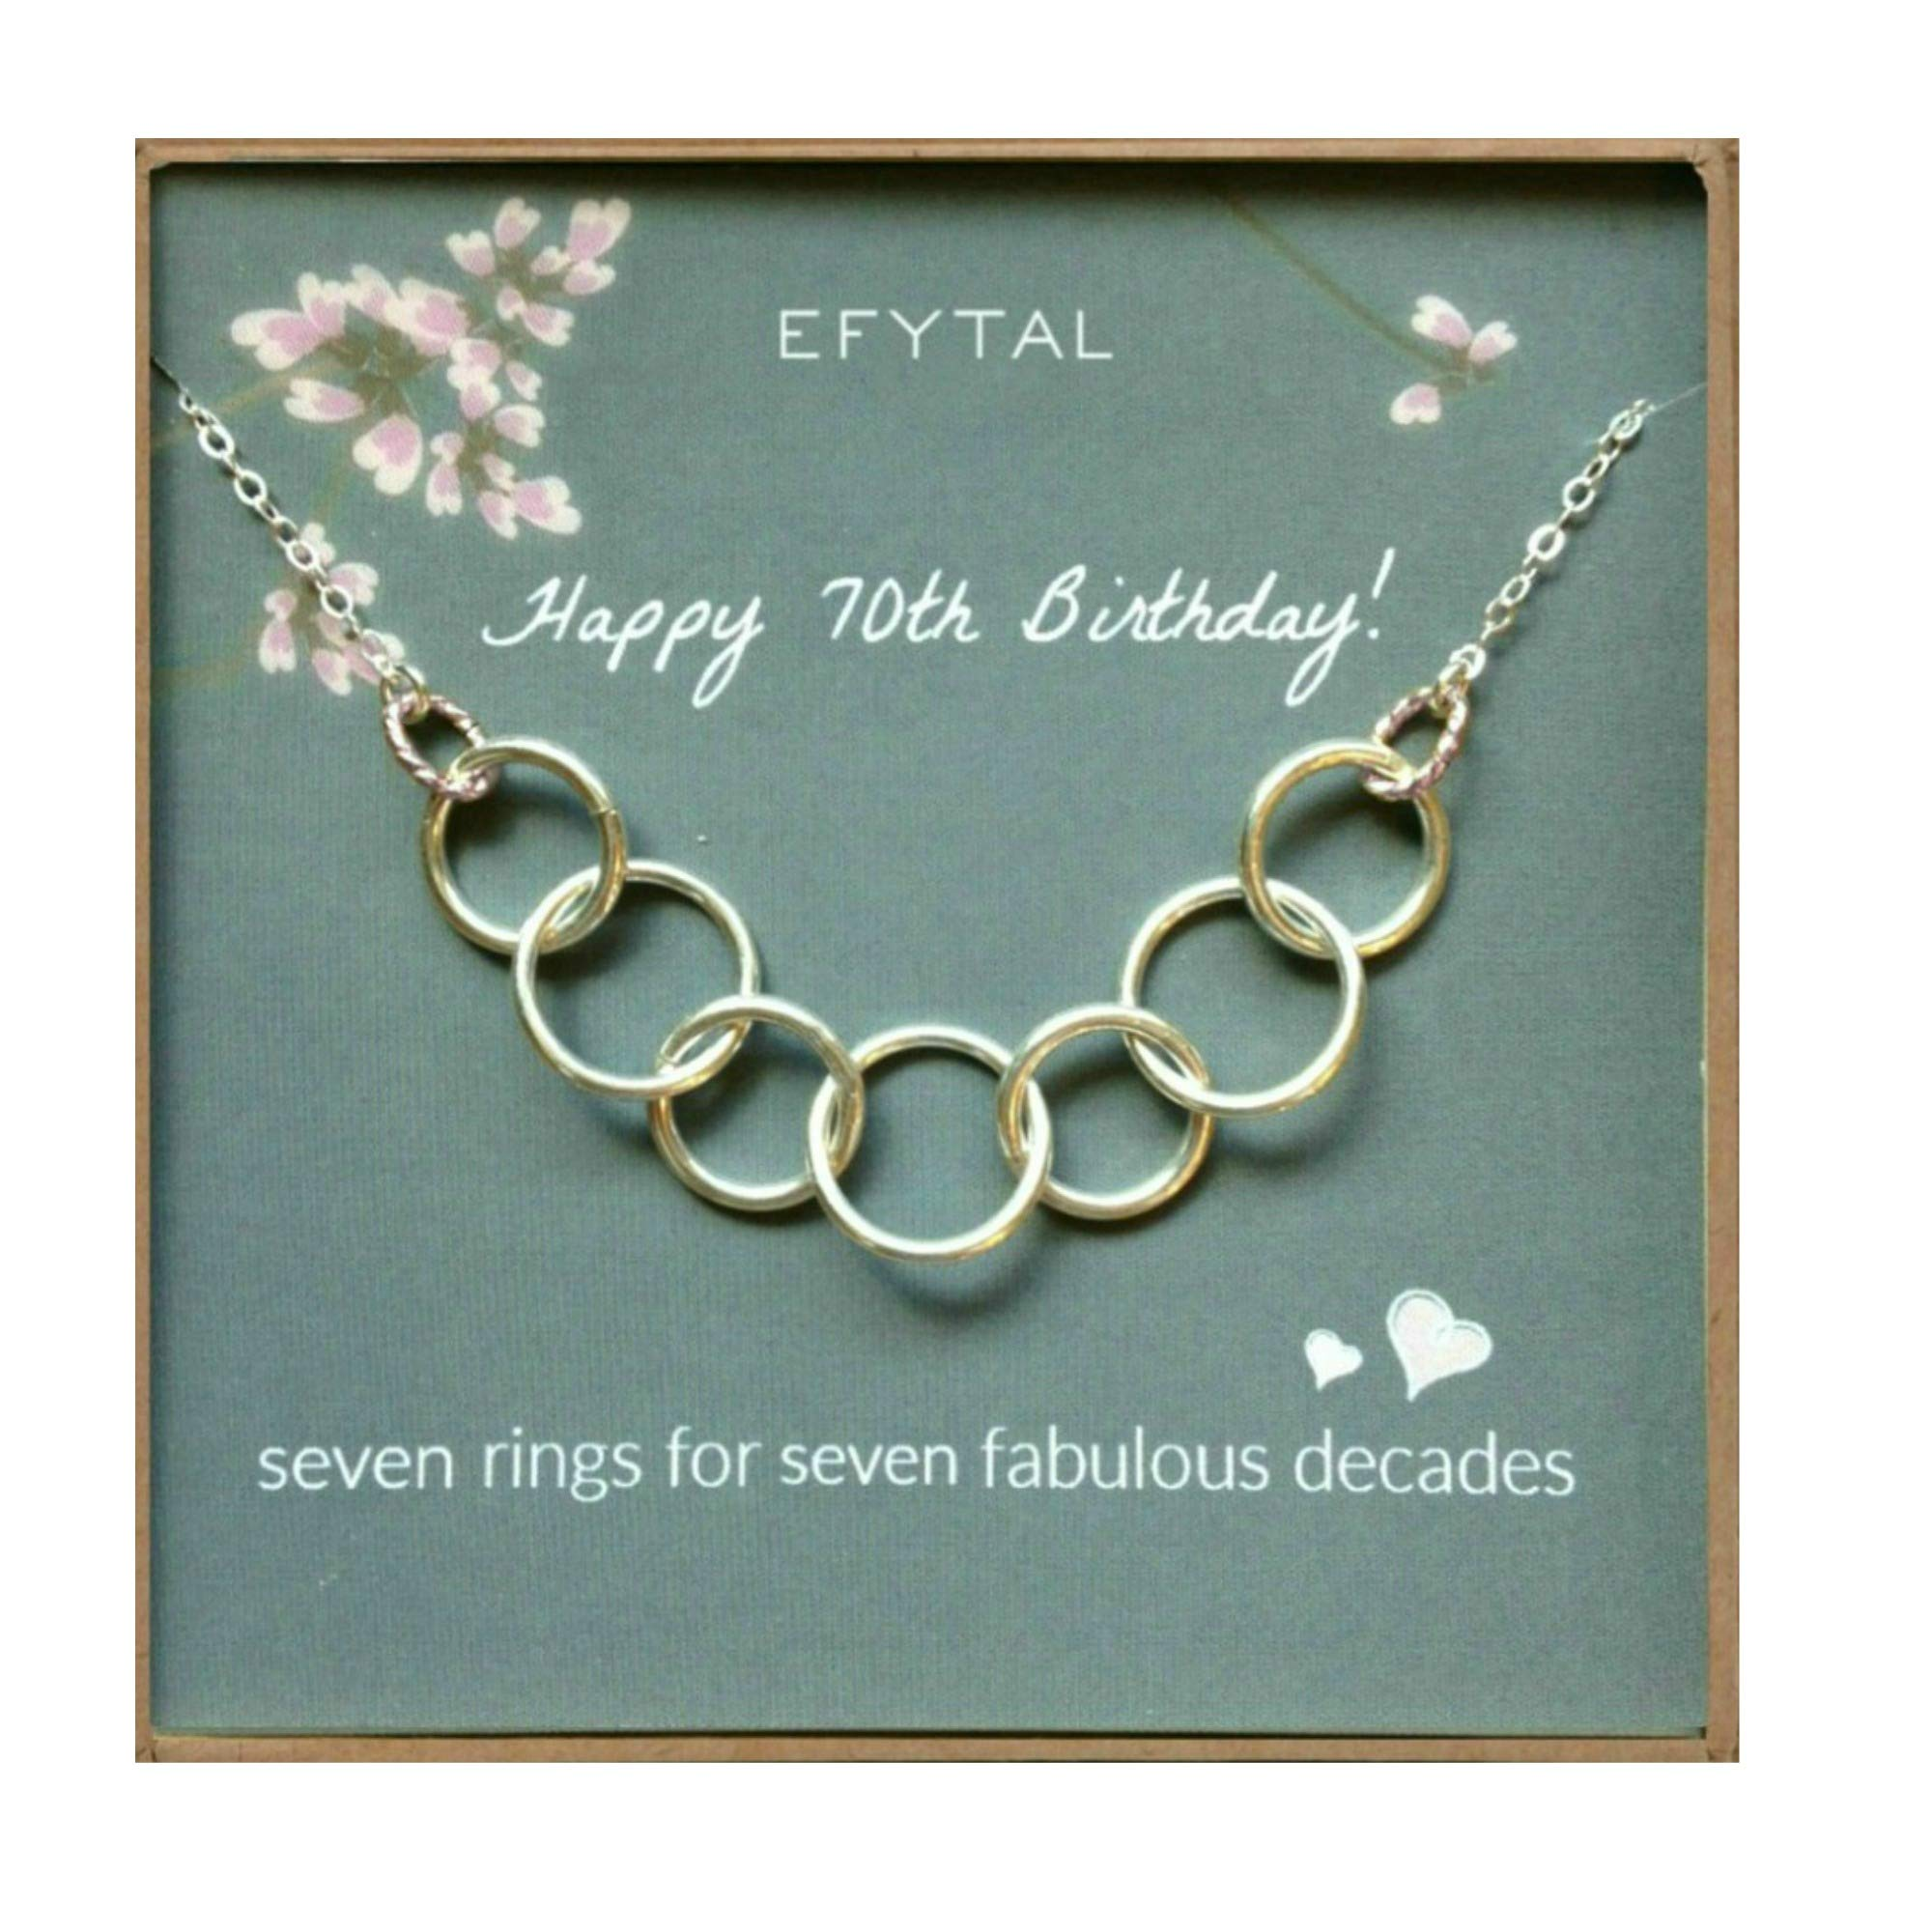 EFYTAL Happy 70th Birthday Gifts for Women Necklace, Sterling Silver 7 Rings Seven Decades Necklaces Gift Ideas by EFYTAL